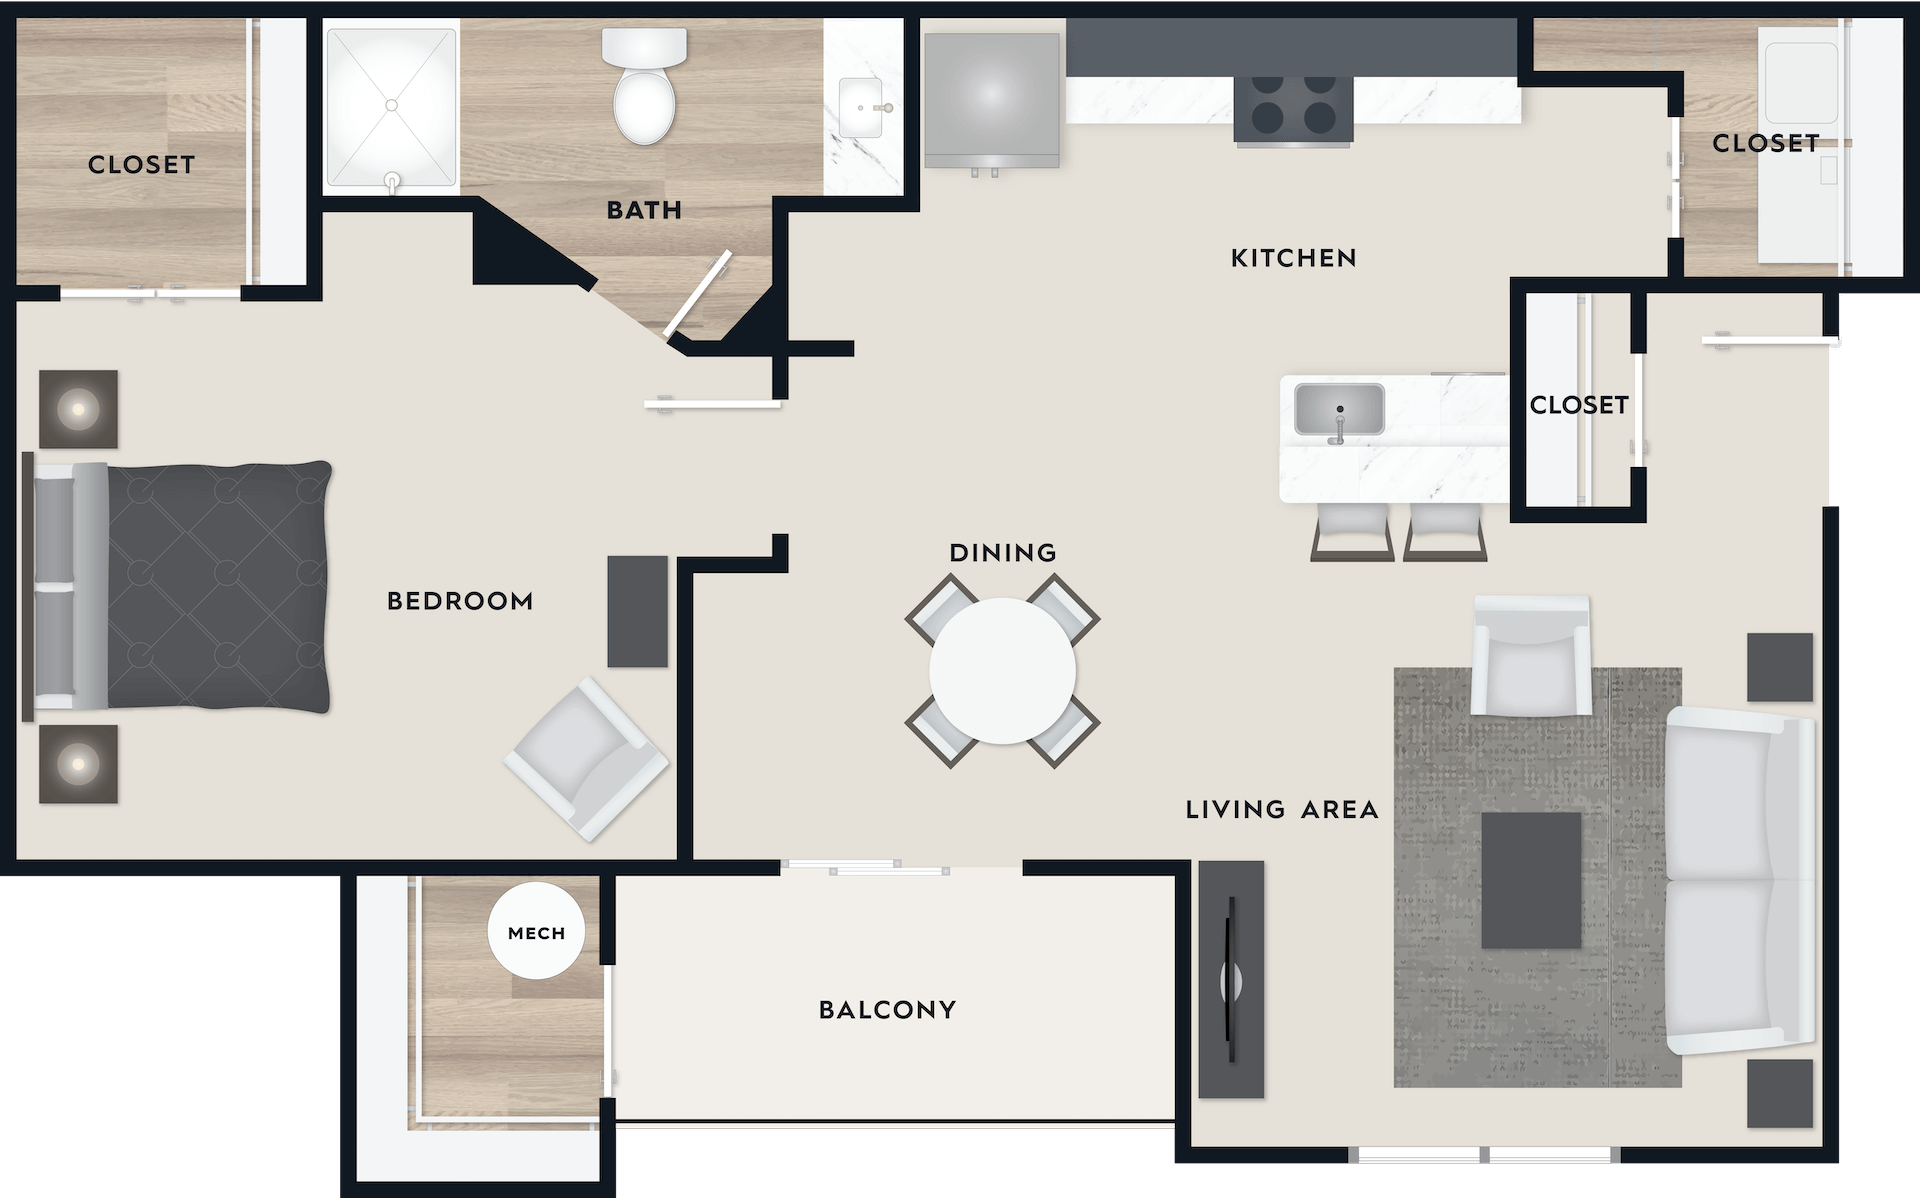 A1 floor plan, 758 square feet, 1 bed, 1 bath, with a balcony.